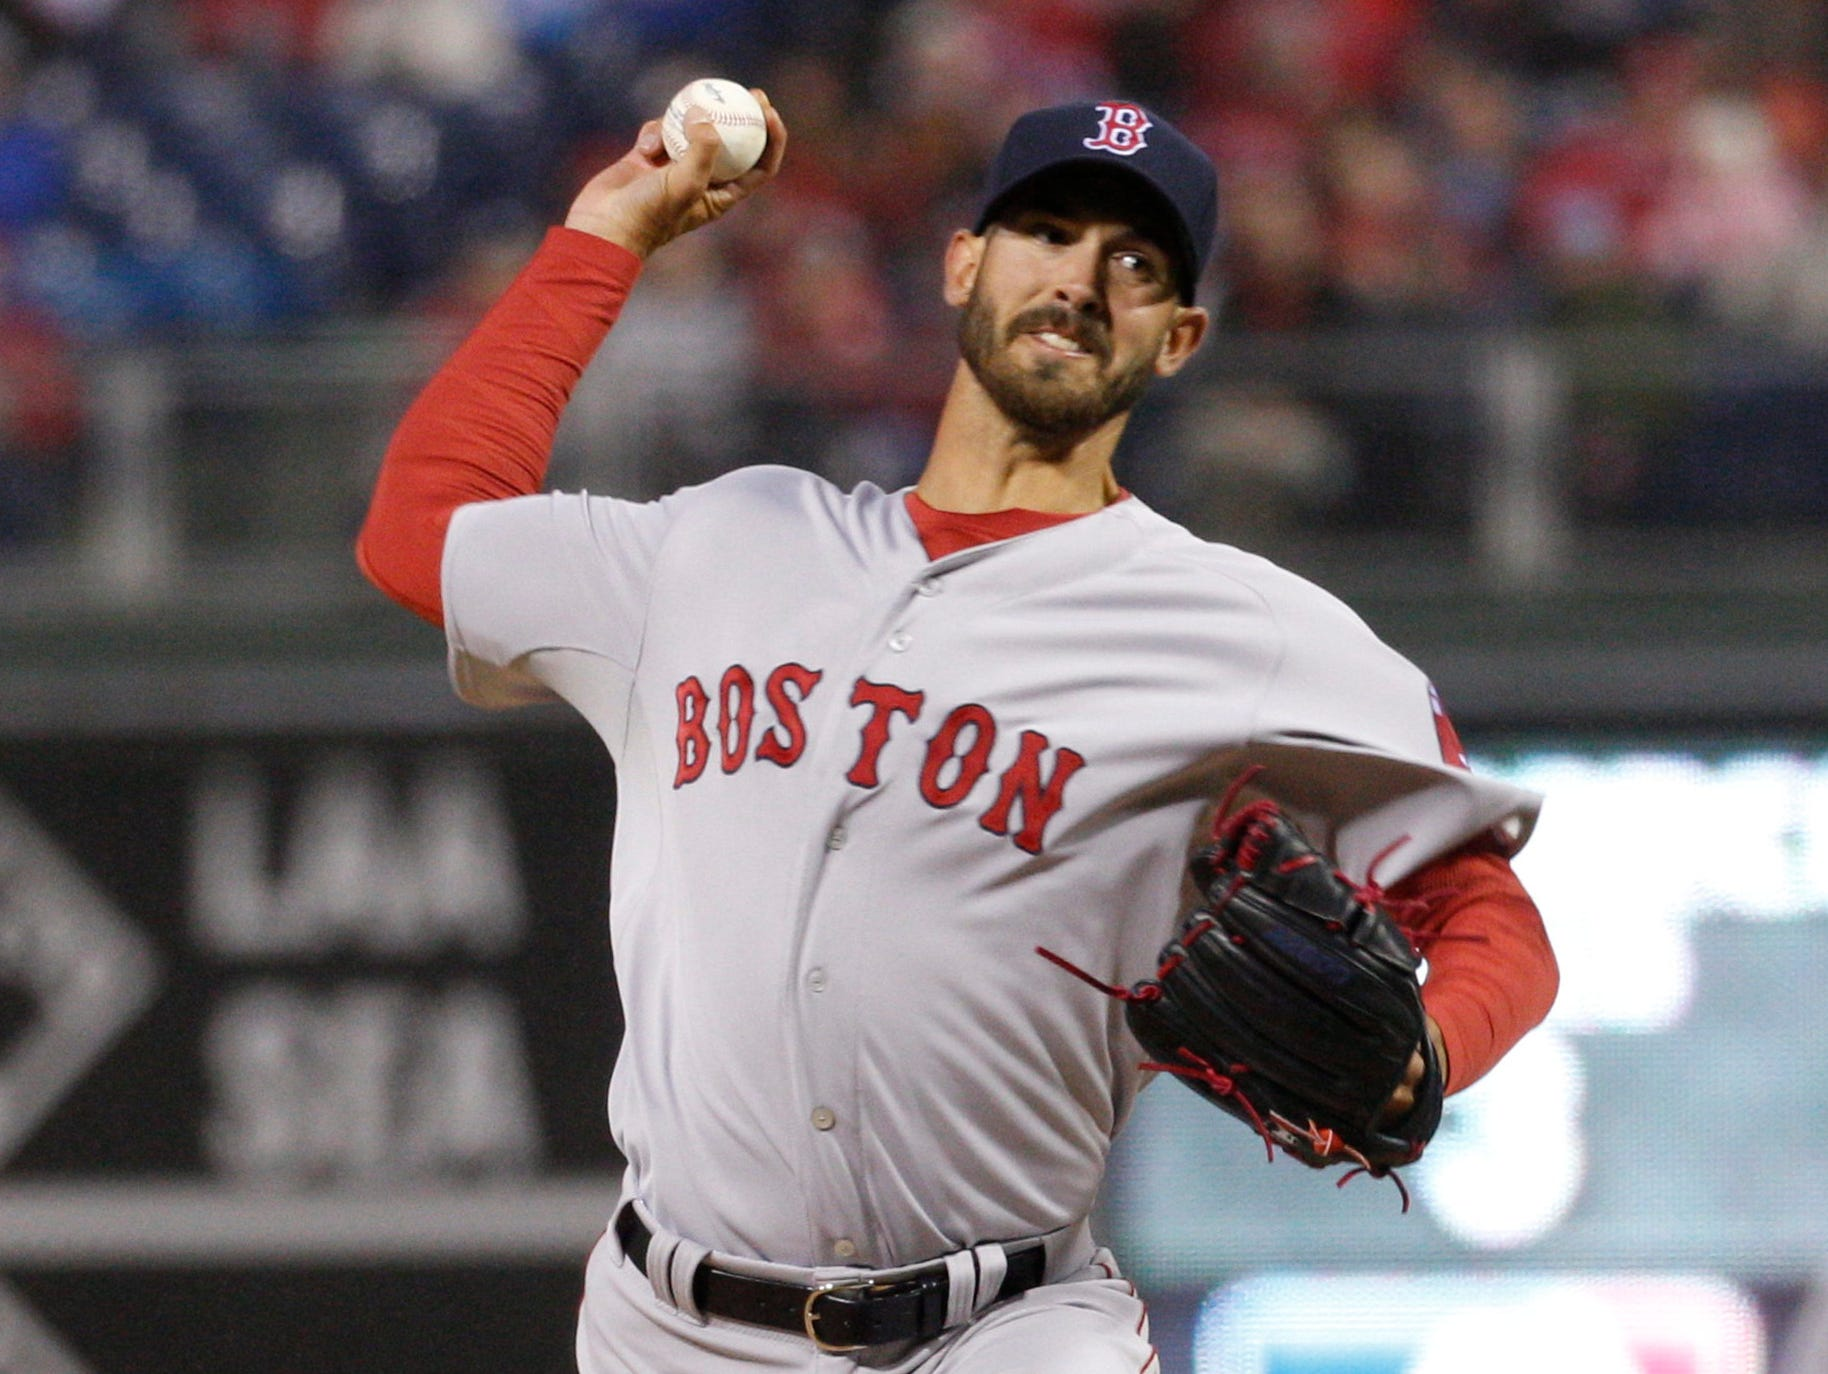 Rick Porcello throws a pitch during the second inning of his Red Sox debut against Philadelphia.